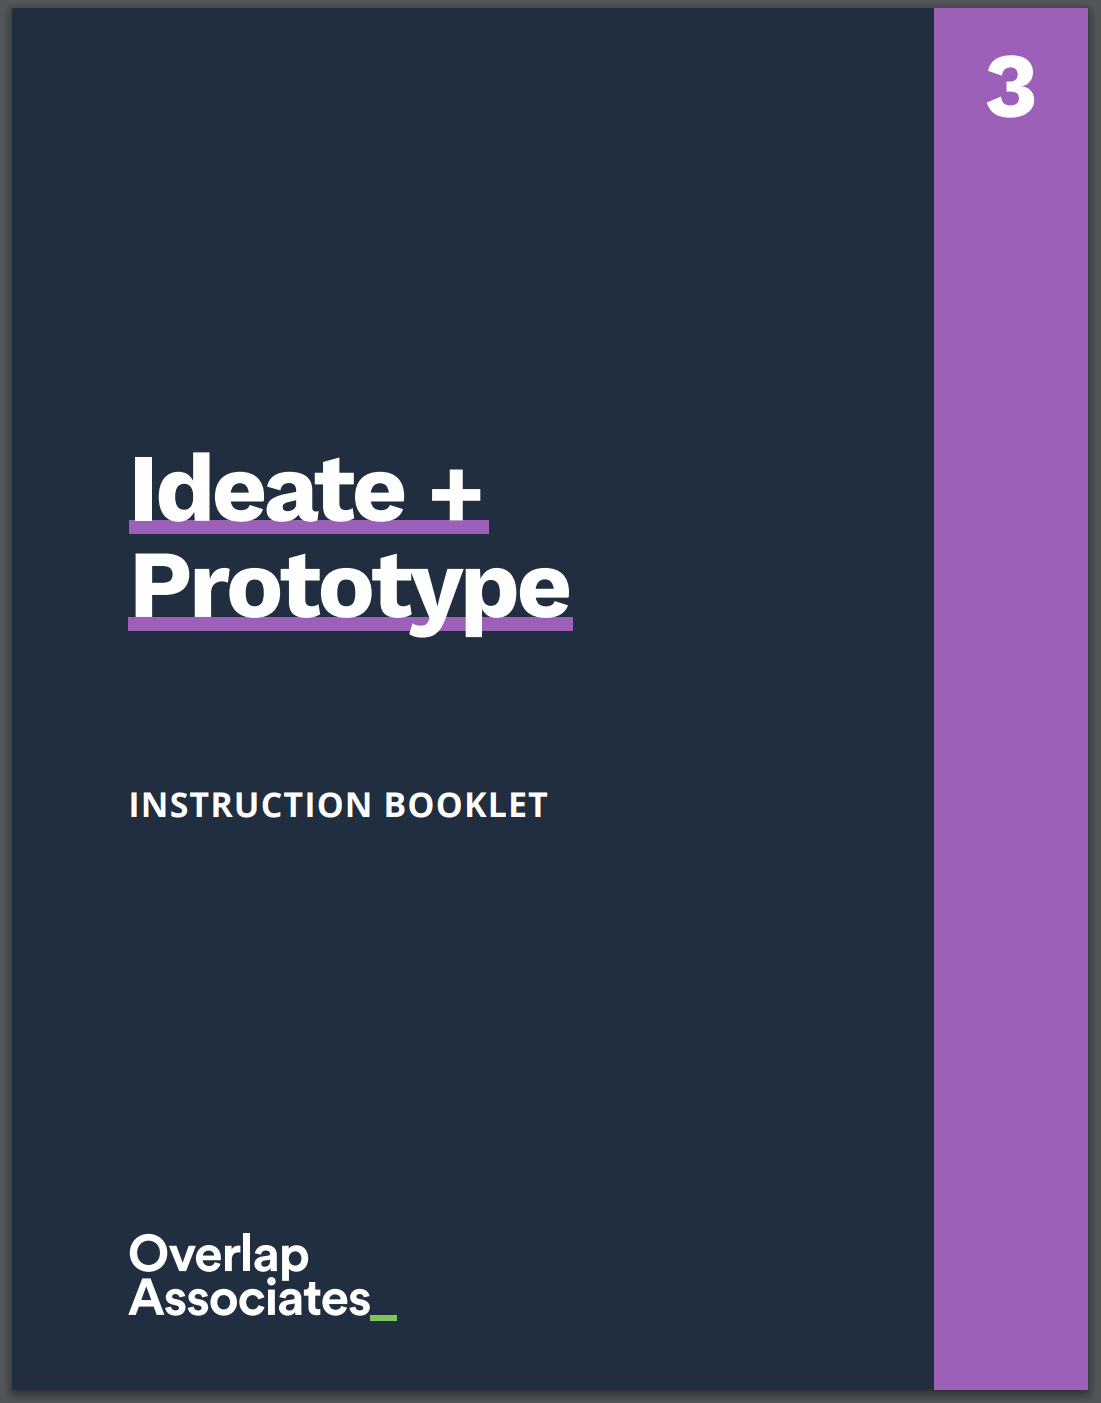 IdeatePrototype_Booklet.png